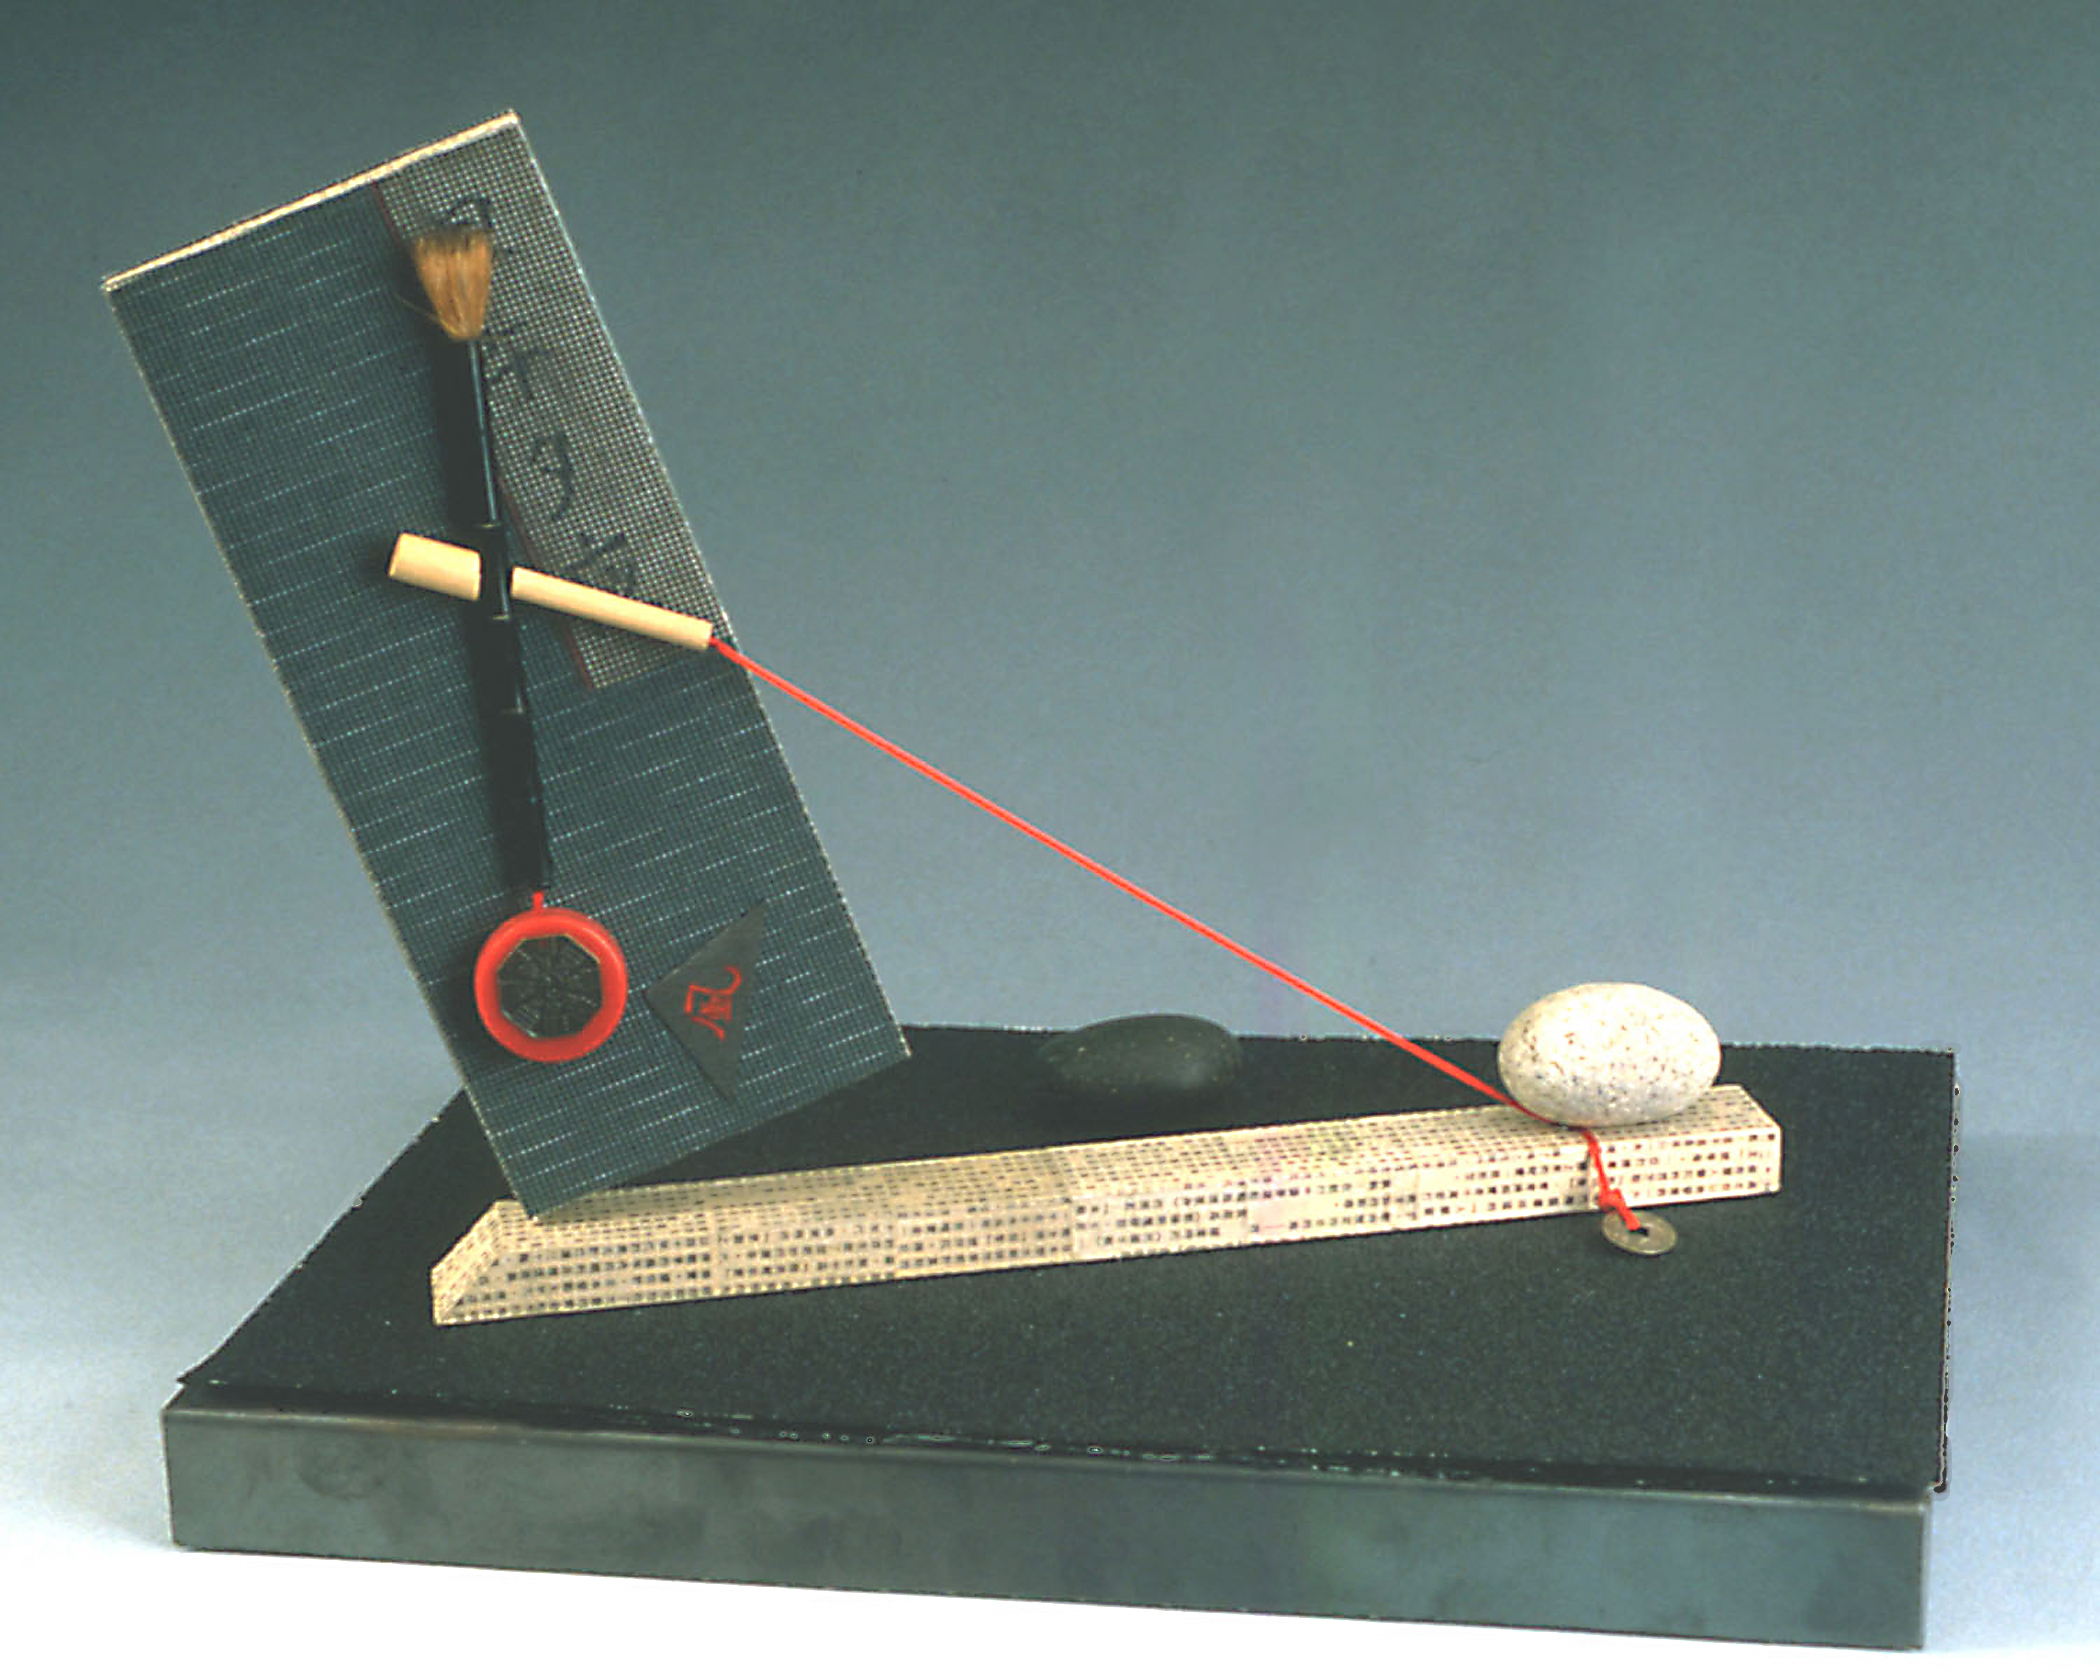 "Zen Station   Langley Spurlock  18"" x 14"" x 12""  Steel, Wood, Stone and Mixed Media  $750   Click here to Inquire"